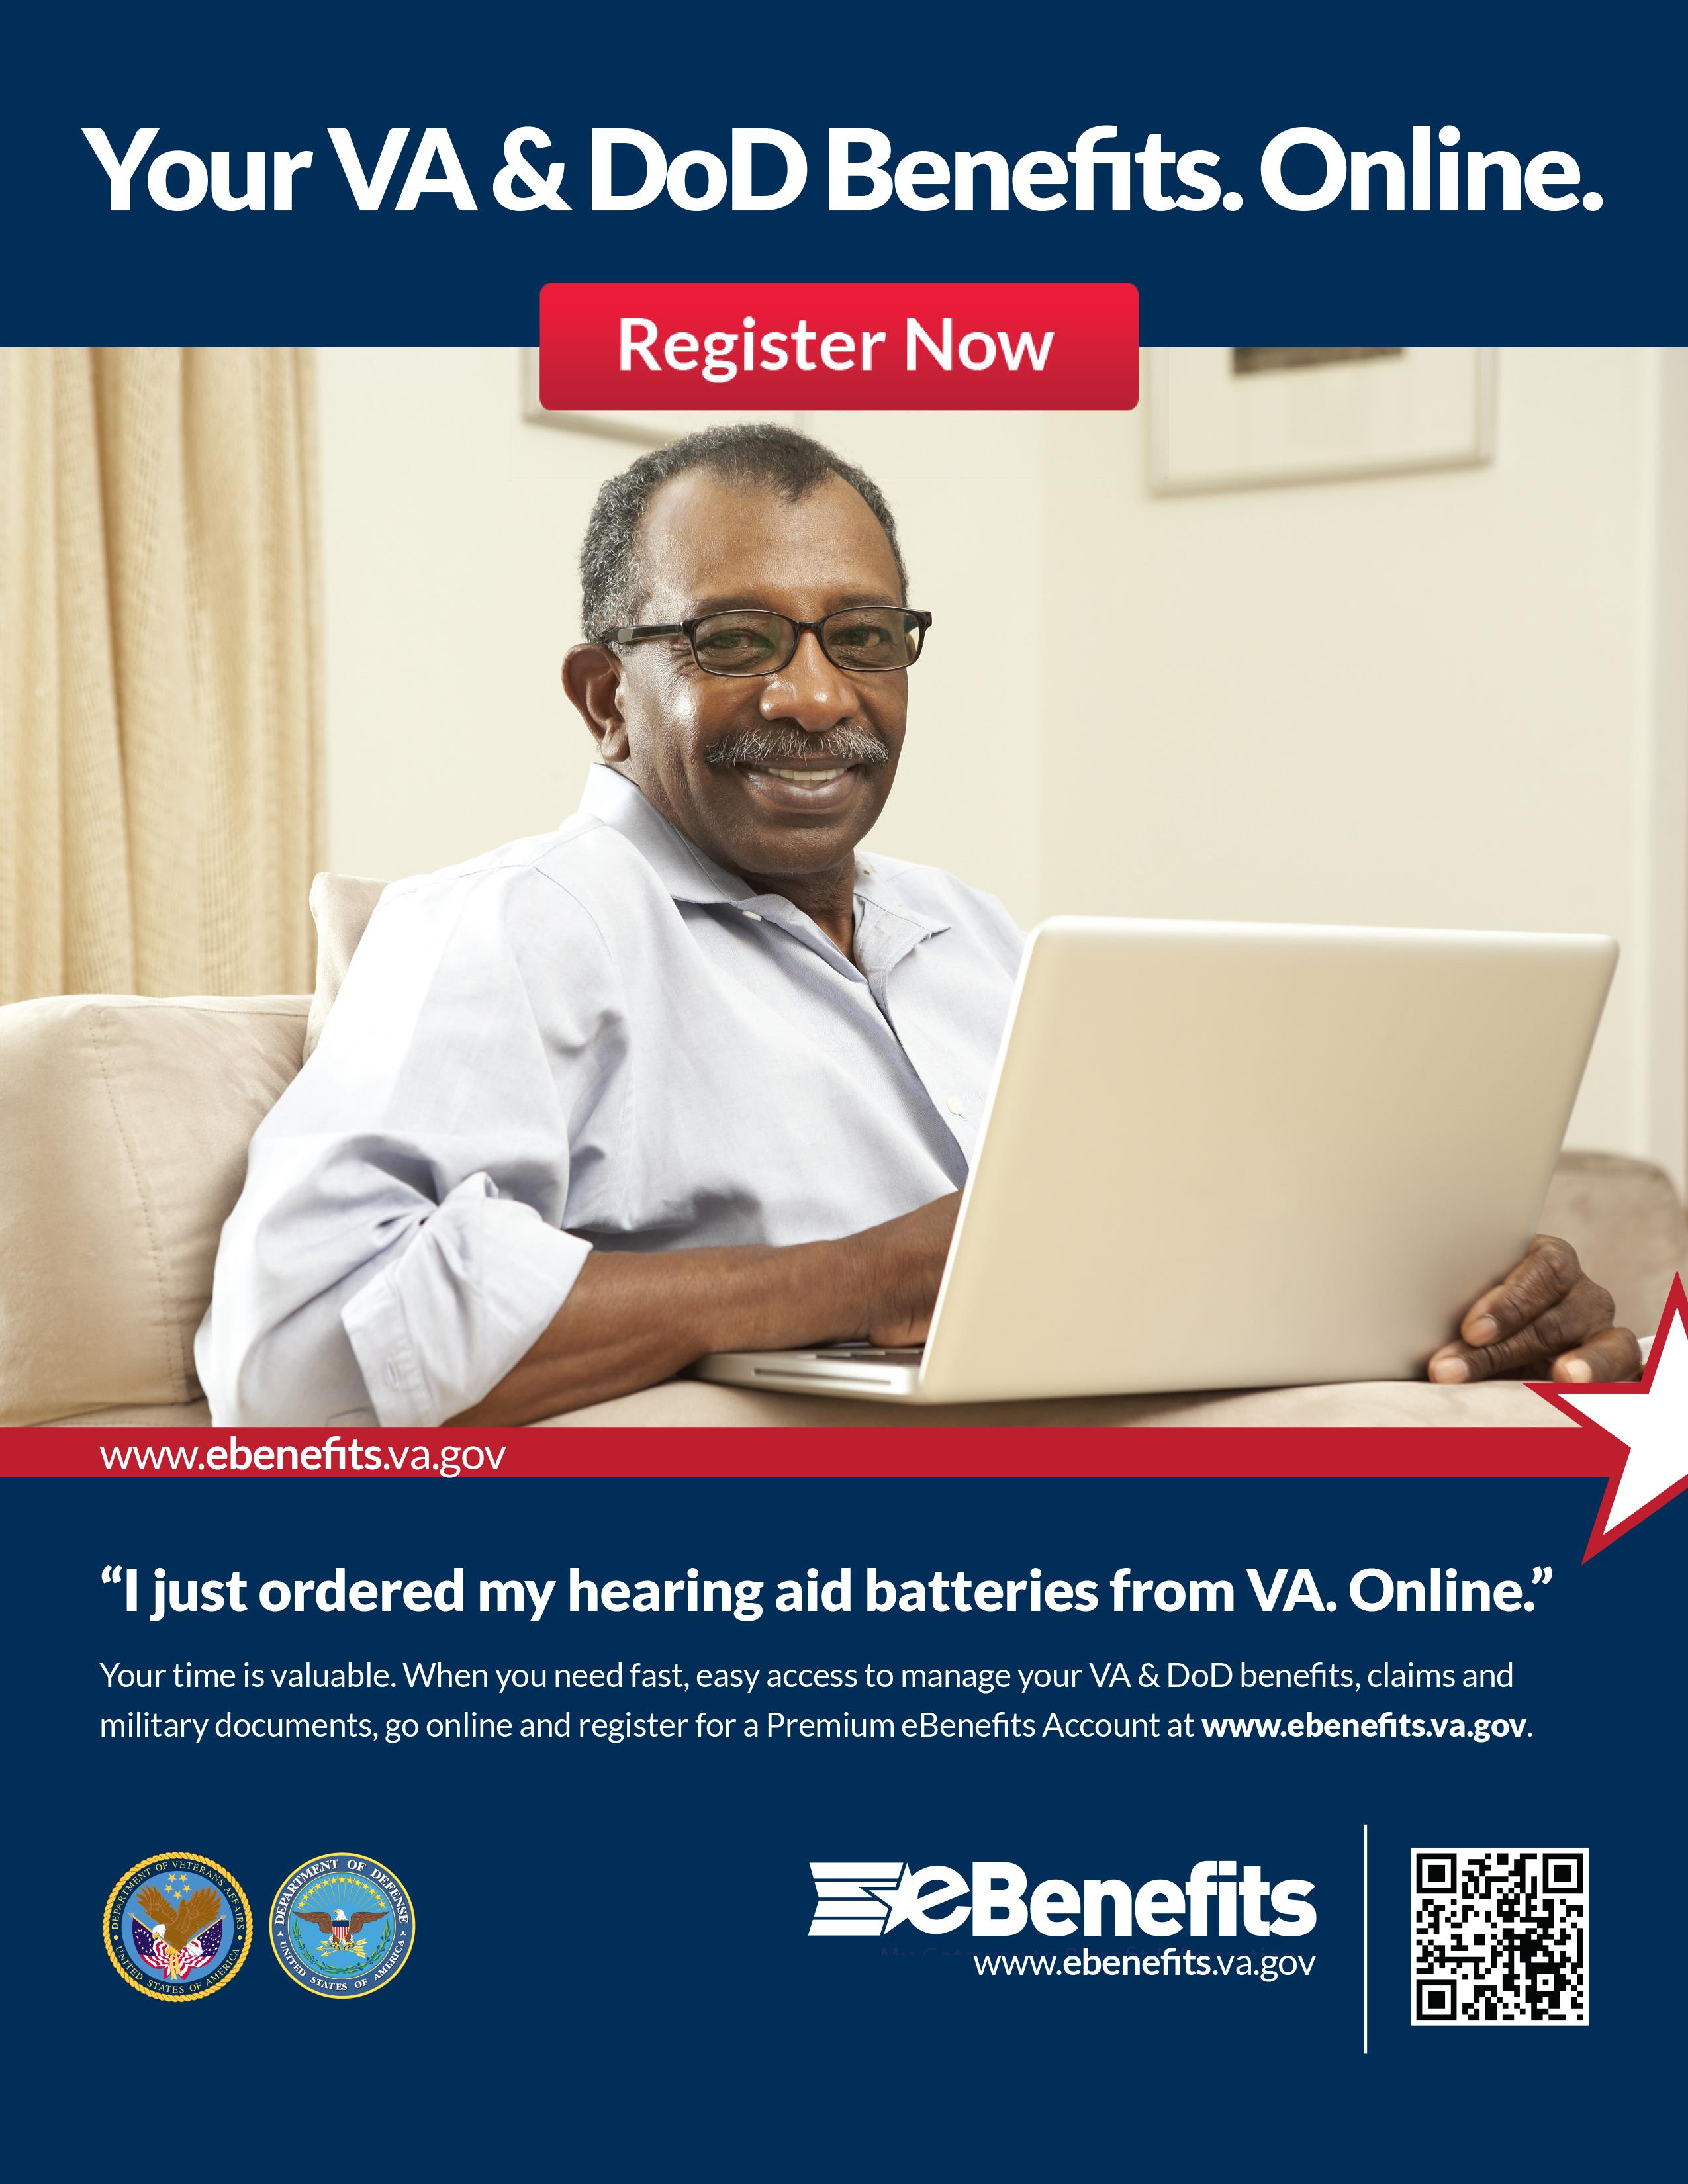 reaching goal early va dod online service tops 5 million users